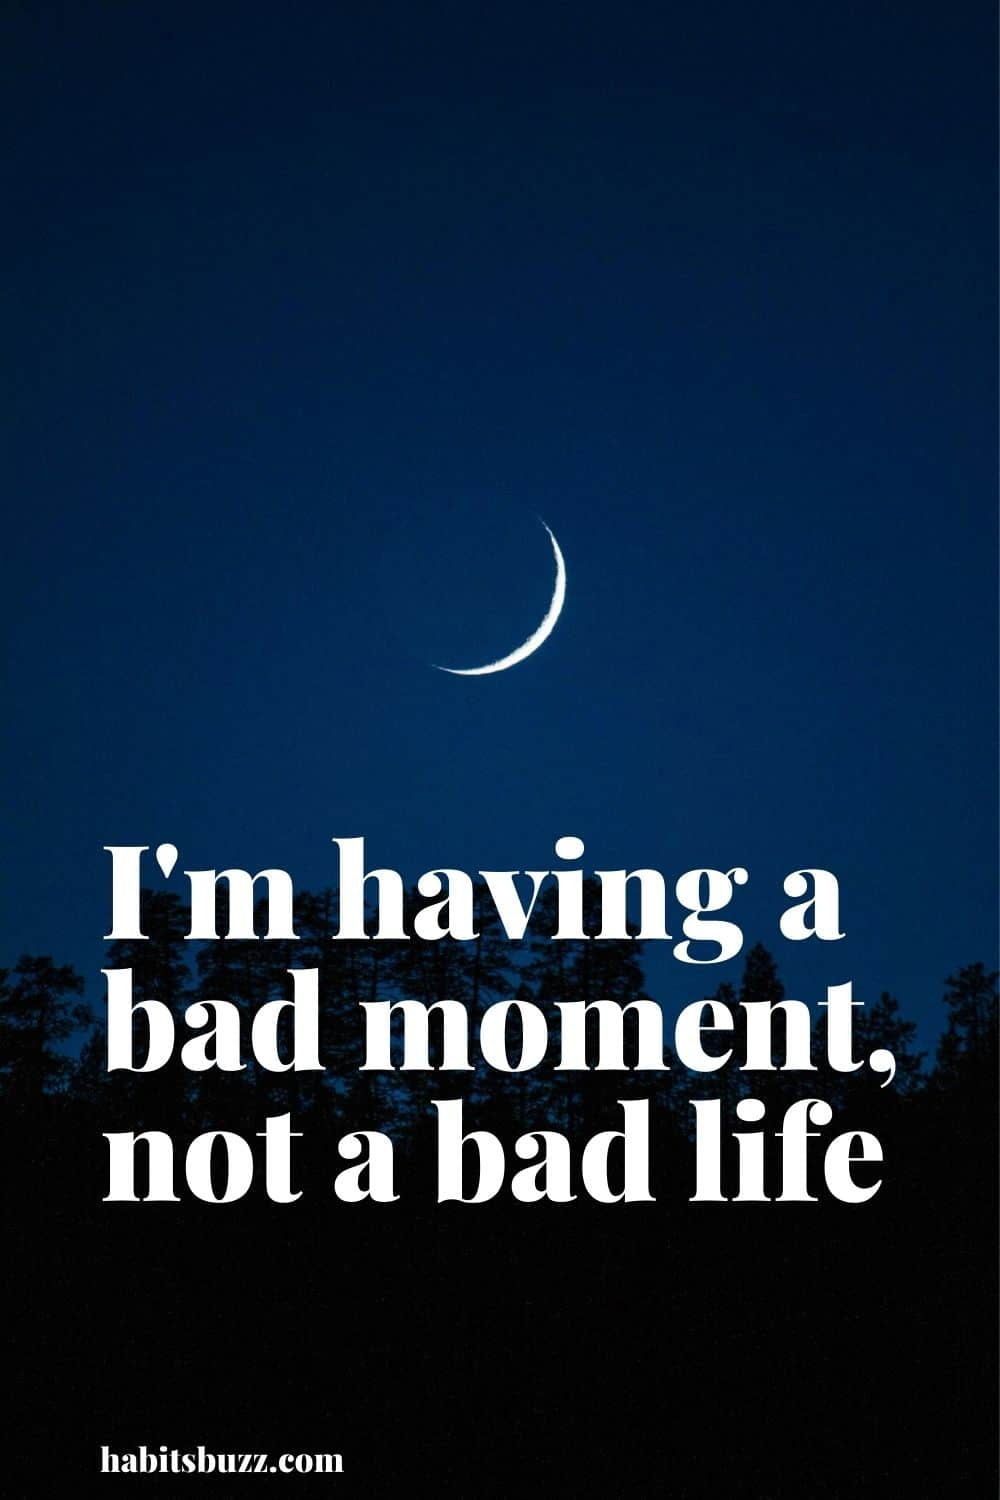 I'm having a bad moment, not a bad life - mantras to get through bad days in life